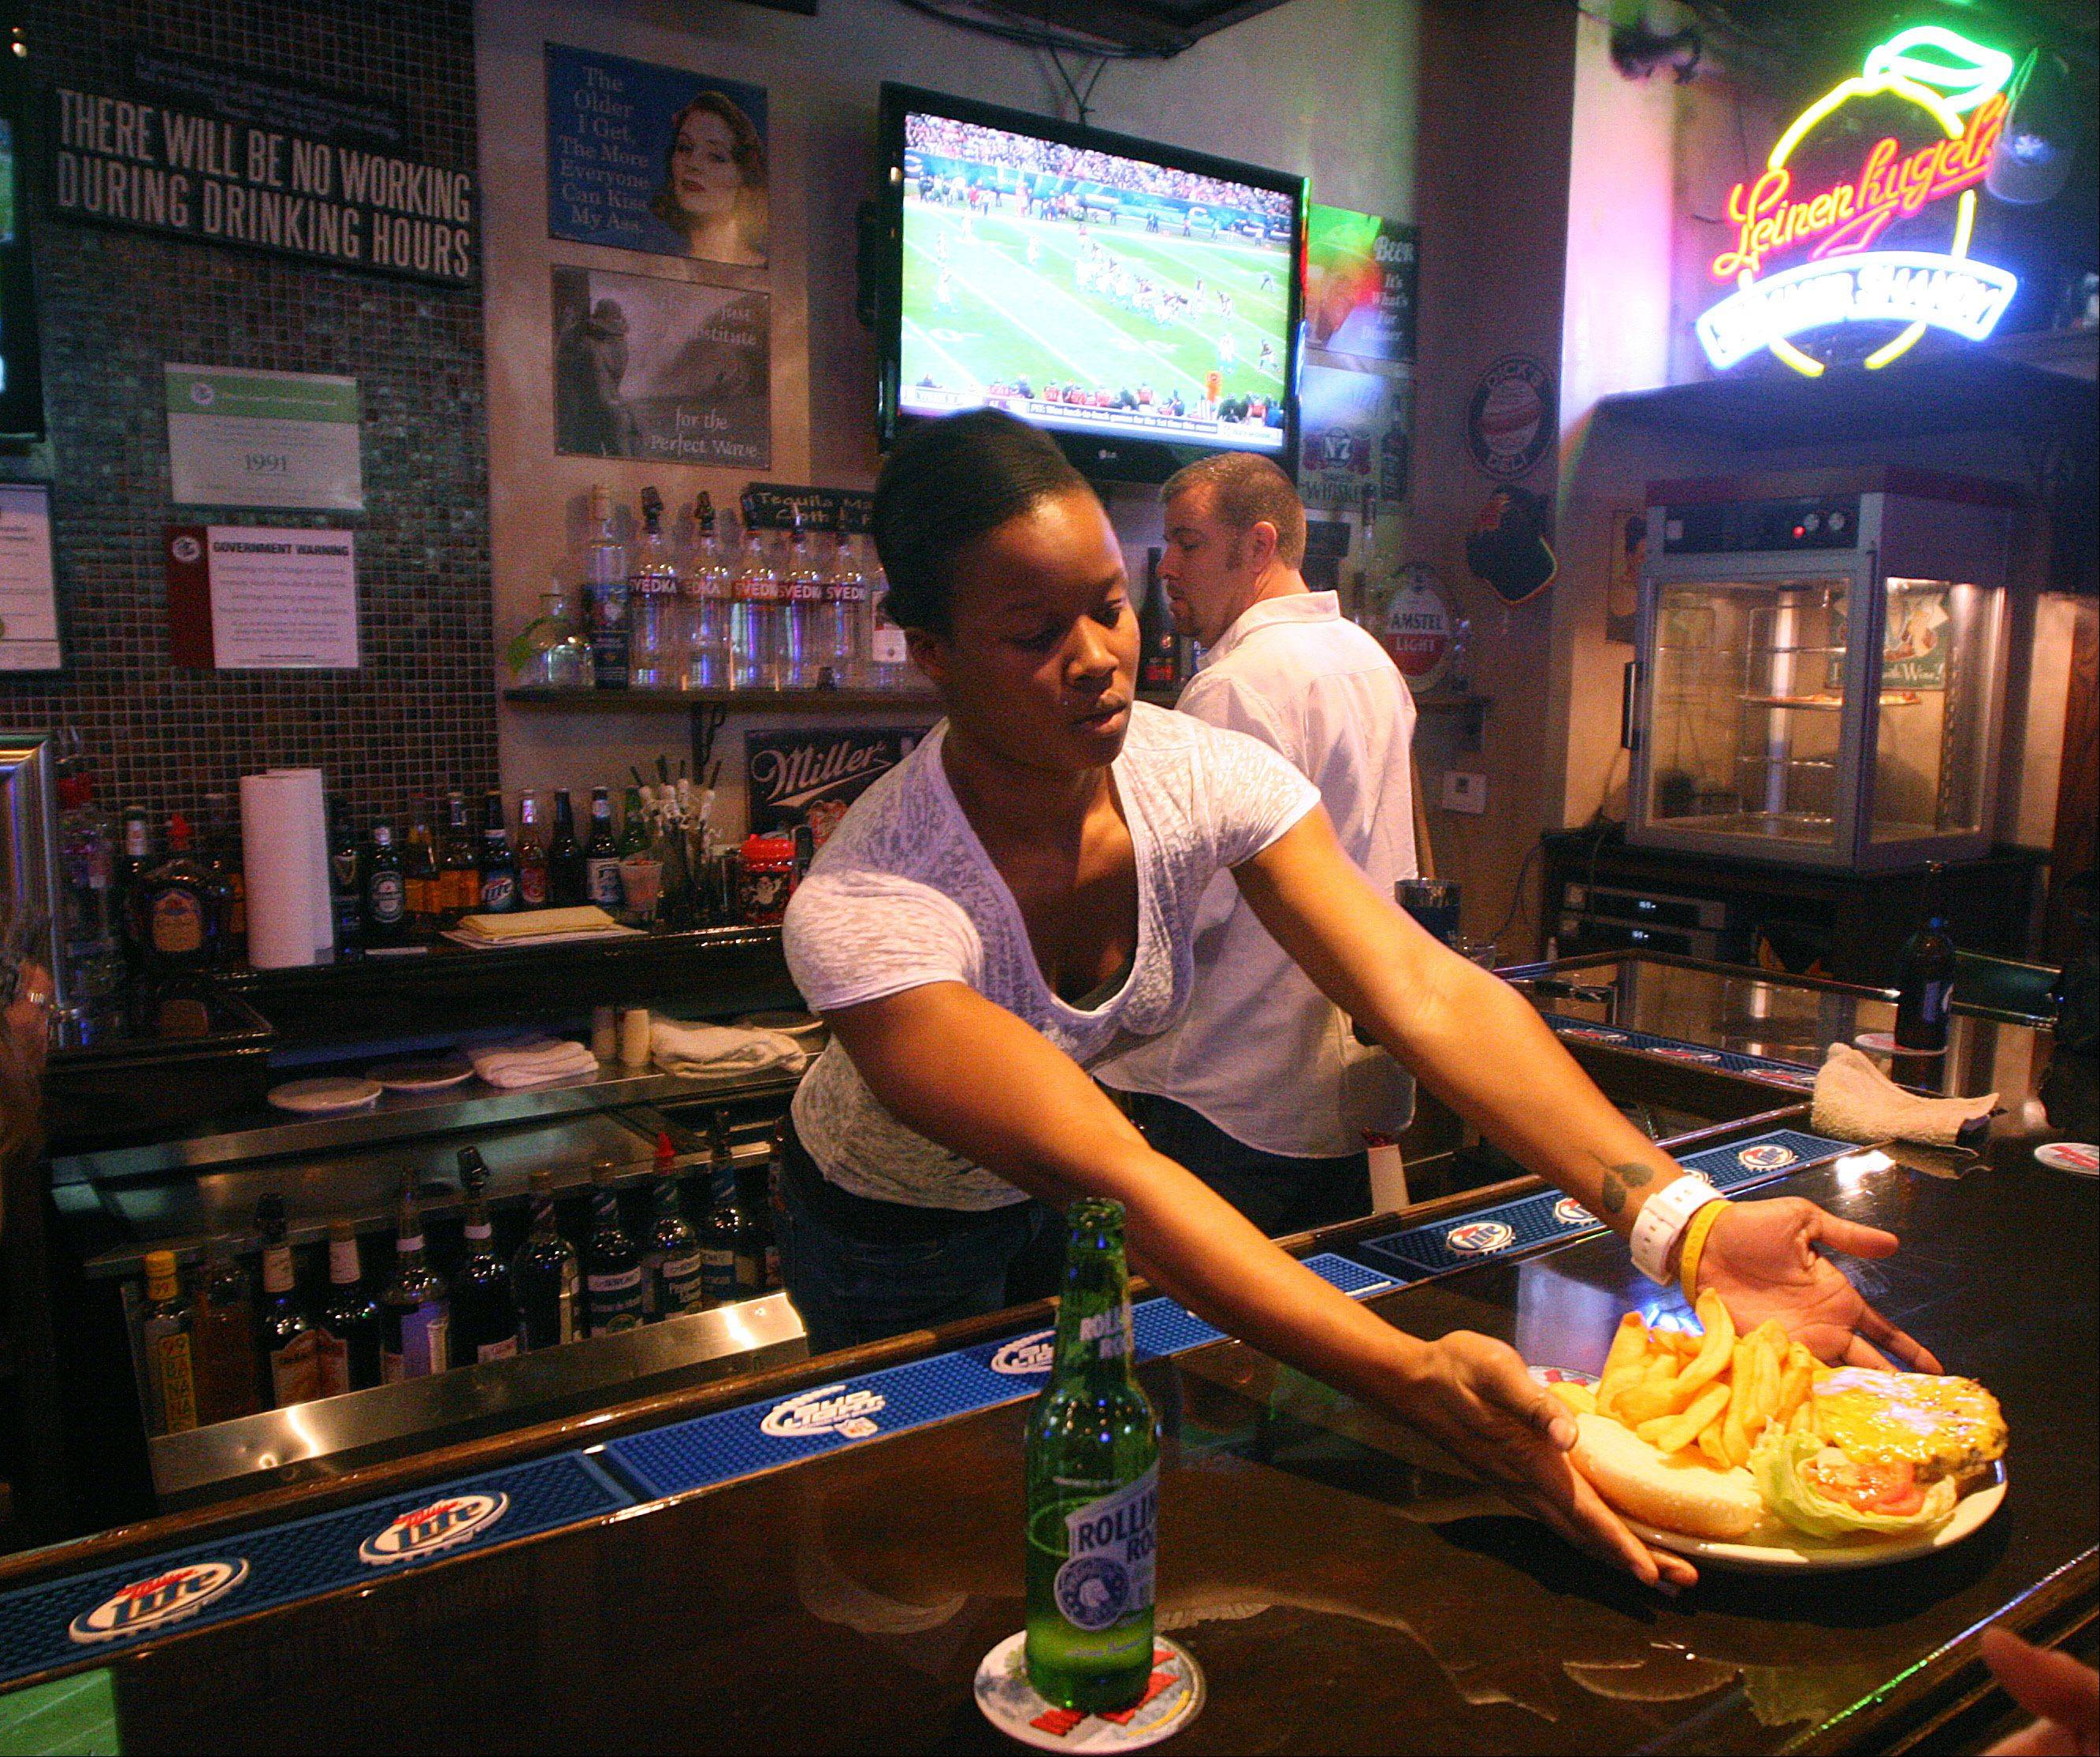 Manager Essence Ashford serves a burger and fries at the Pour House Bar & Grill in East Dundee.